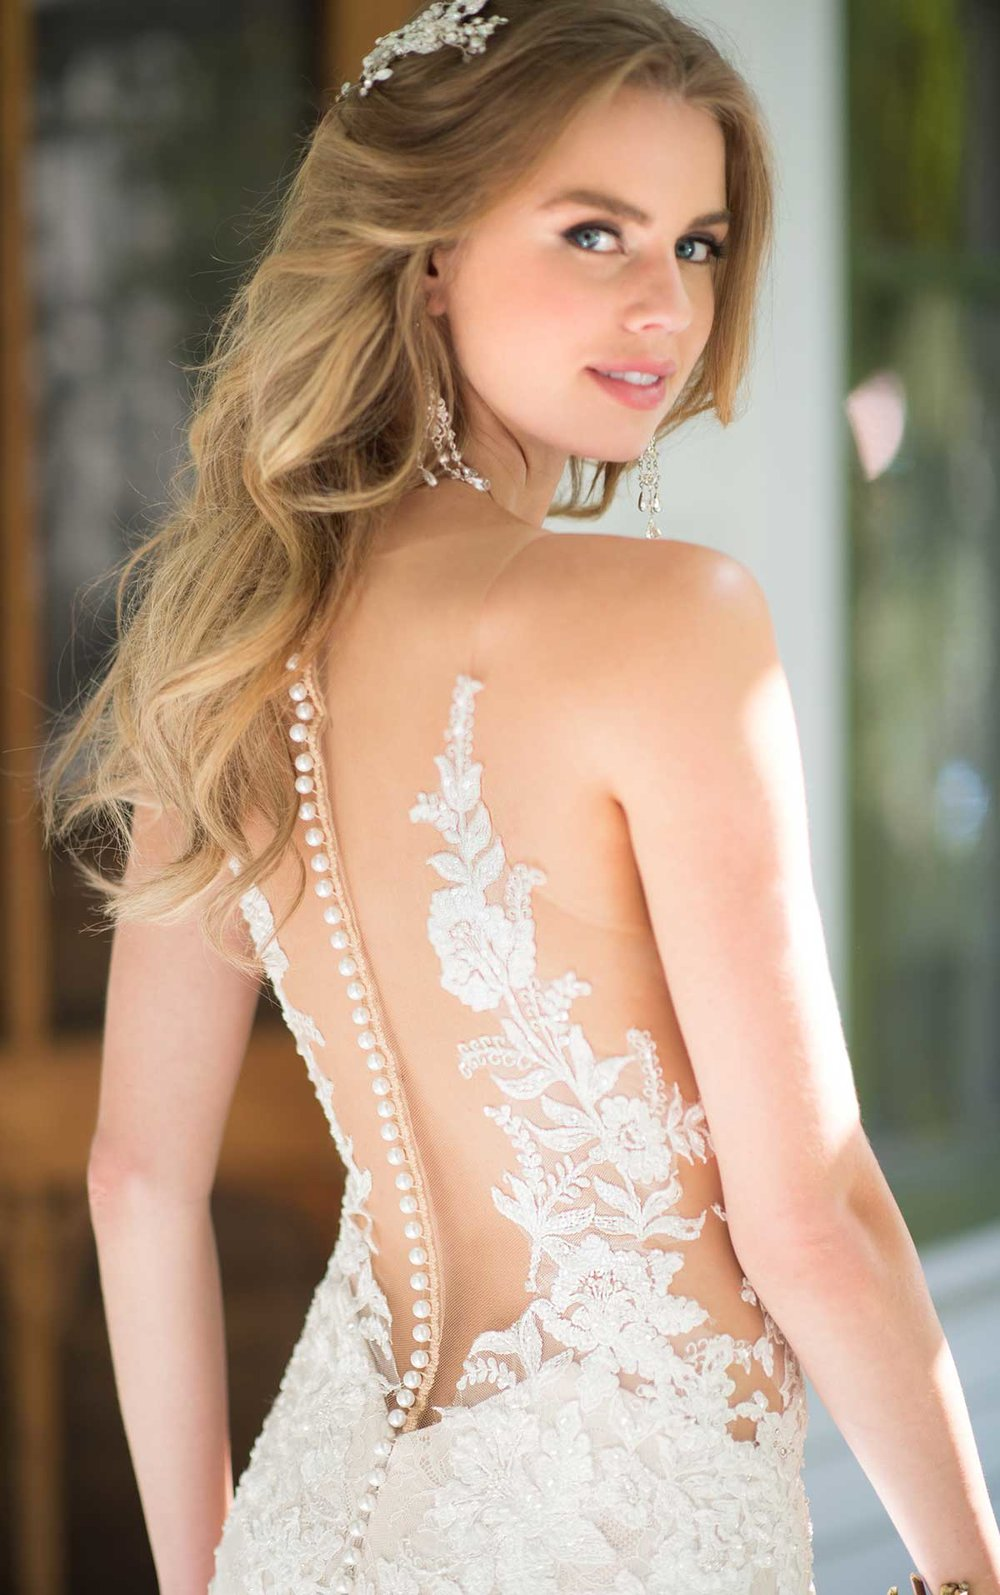 Lace Wedding Dresses | Inventory # 01951 | Lace Wedding Dresses | Inventory # 01951 | available at Bride To Be Couture | 6040 Fair Oaks Blvd. Carmichael, CA 95608 | 916.972.8223 | @bridetobecouture